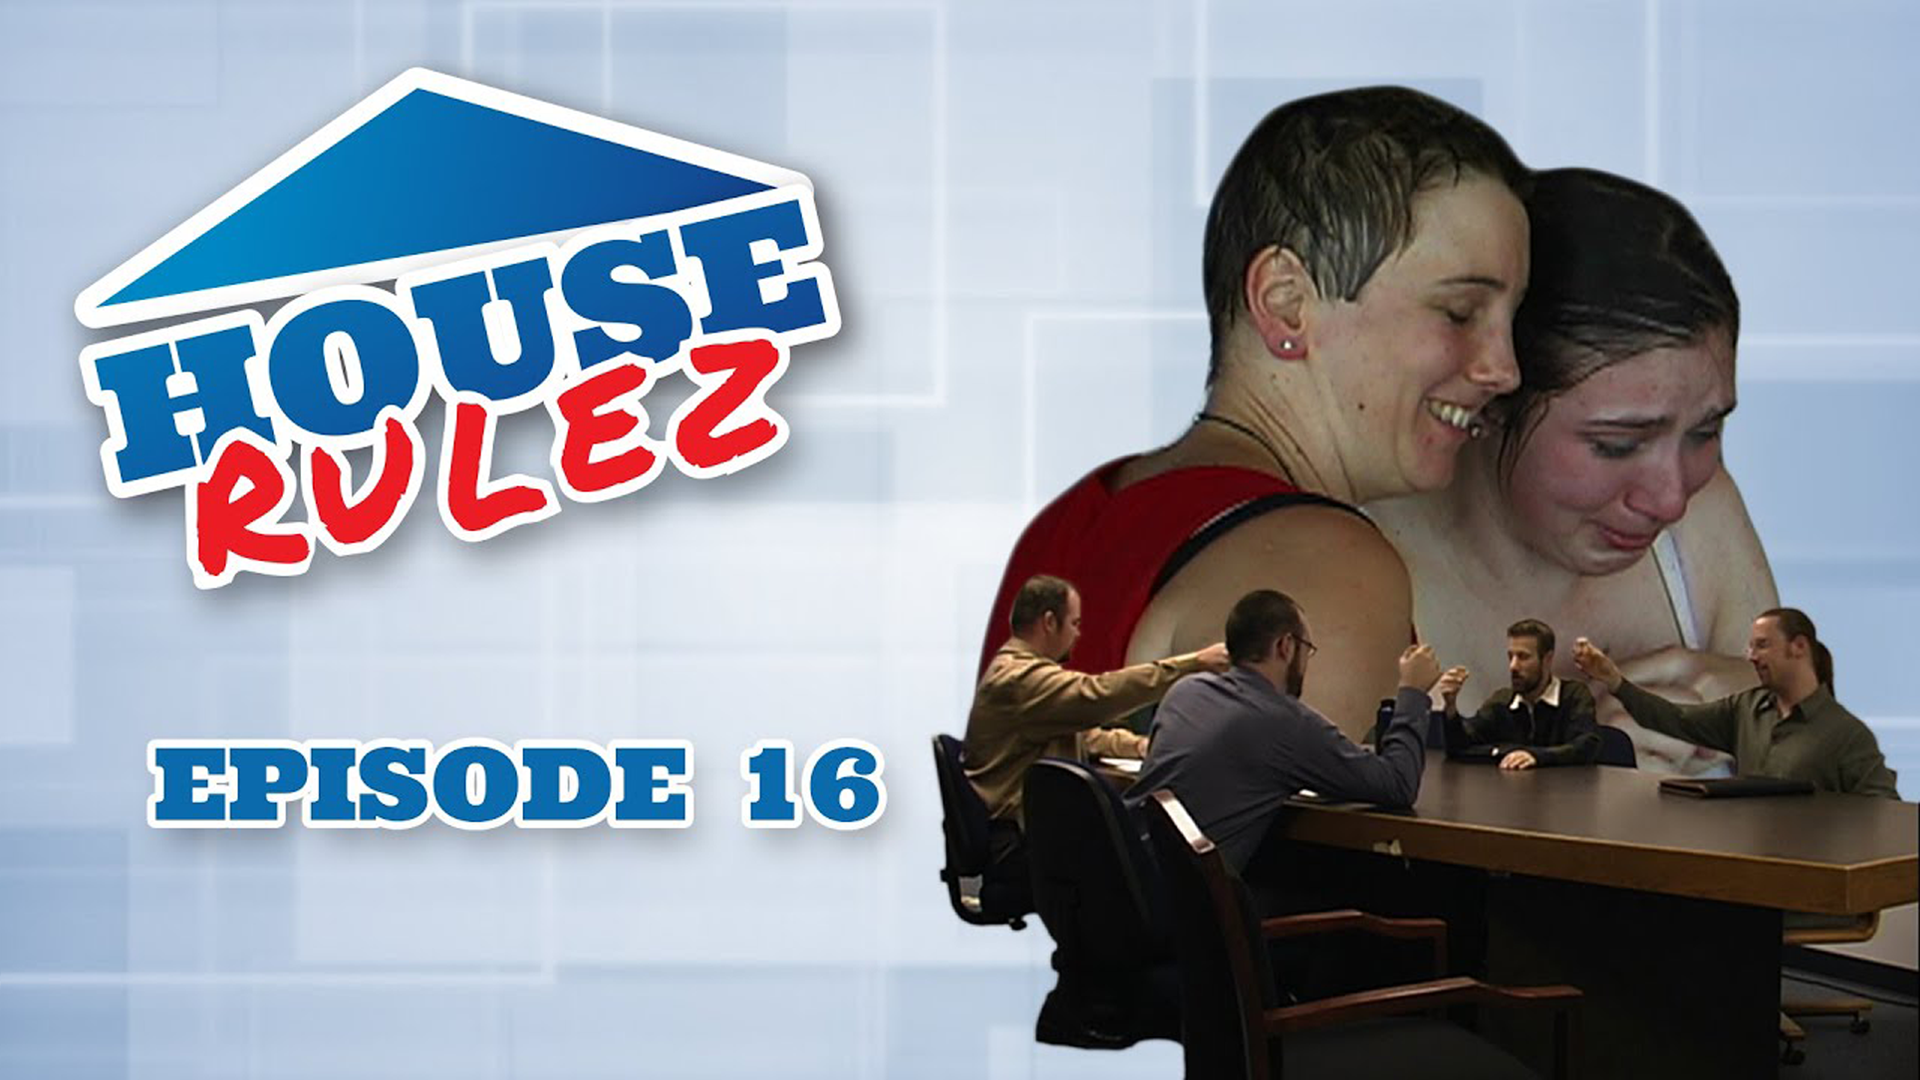 House Rulez Episode 16